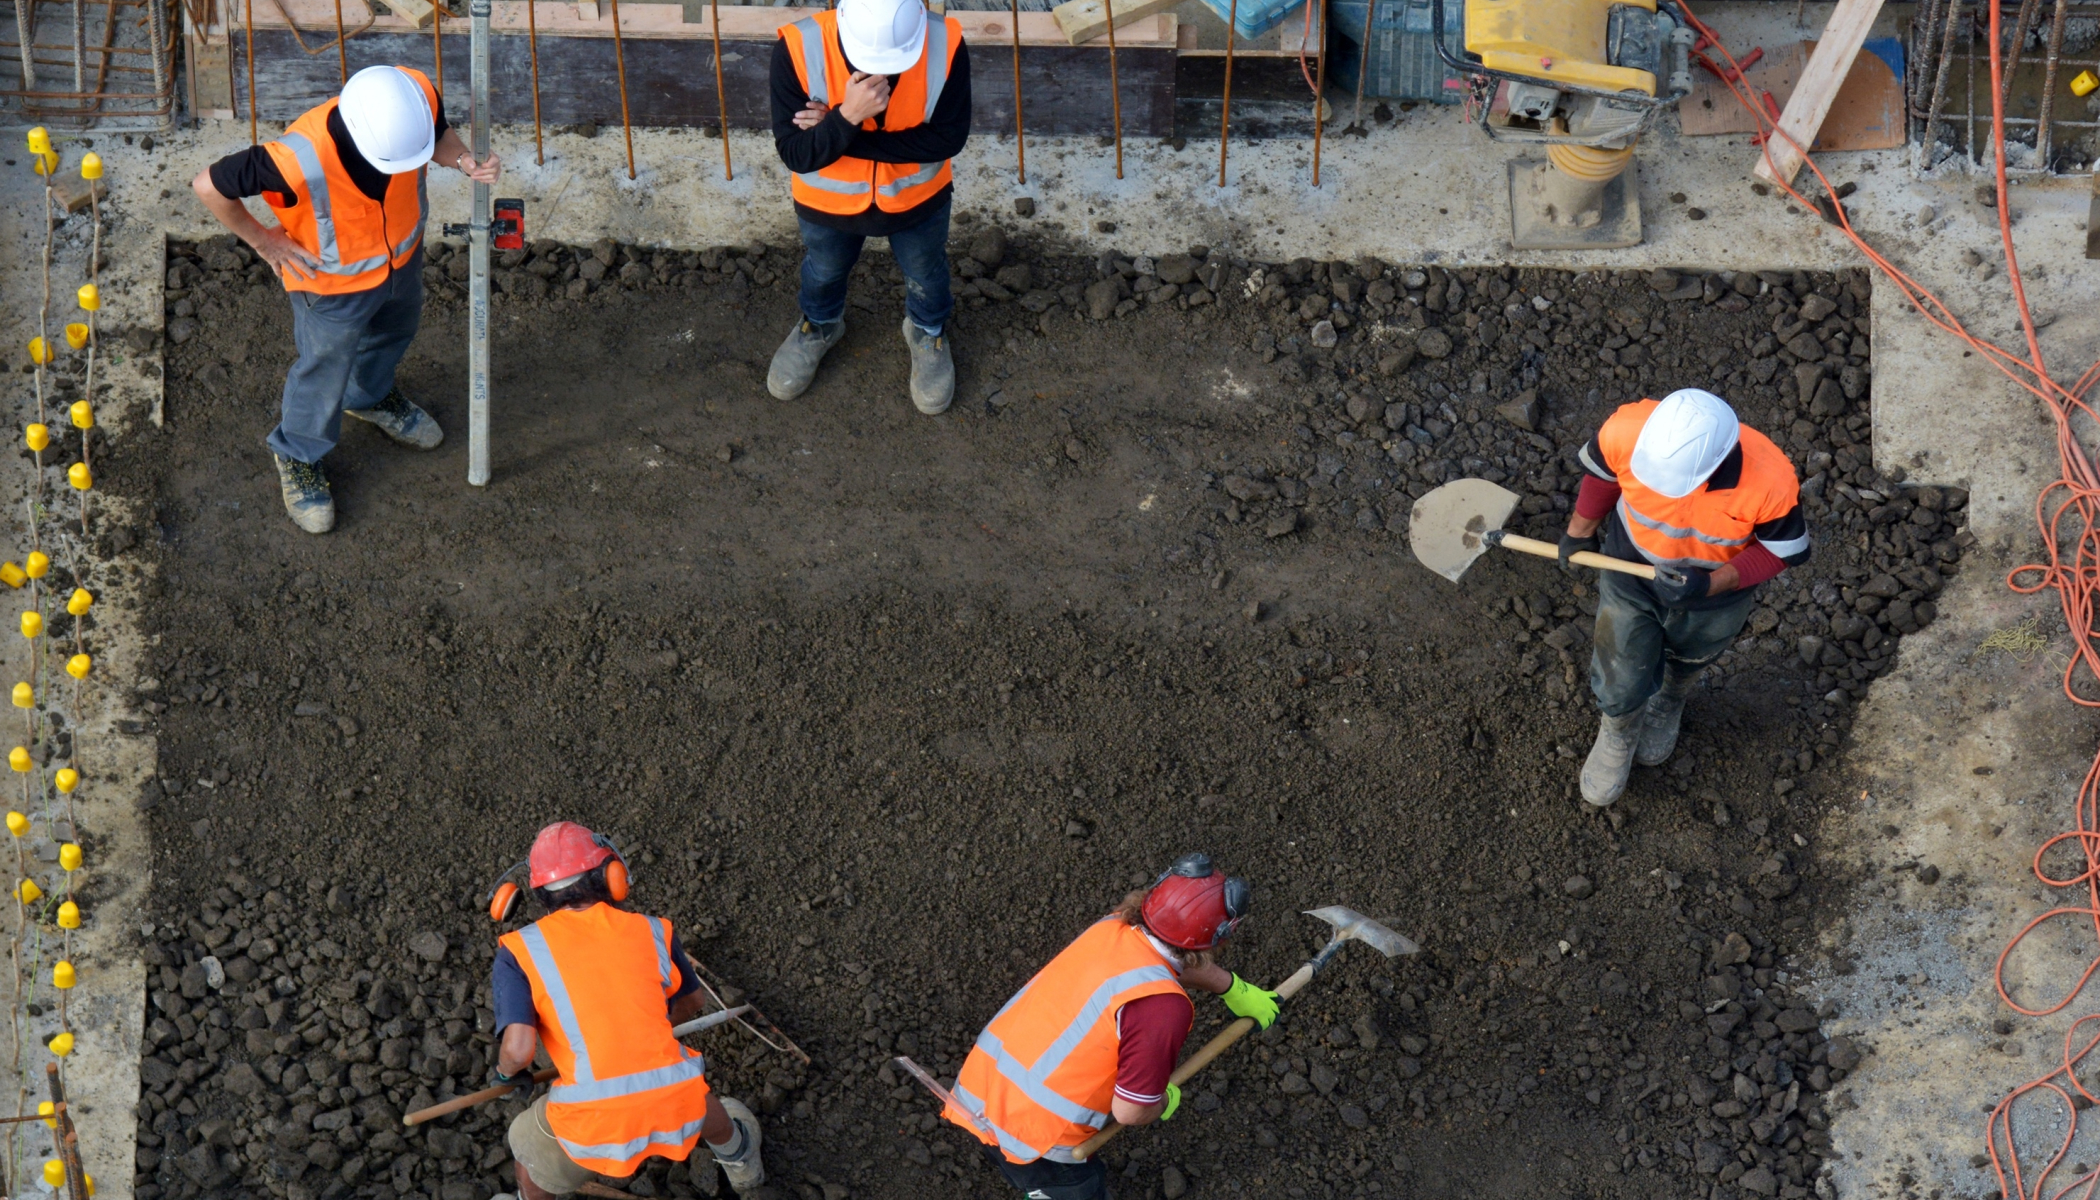 Construction Workers Break Ground for a Skyscraper and Find 50-Foot-Long Artifact